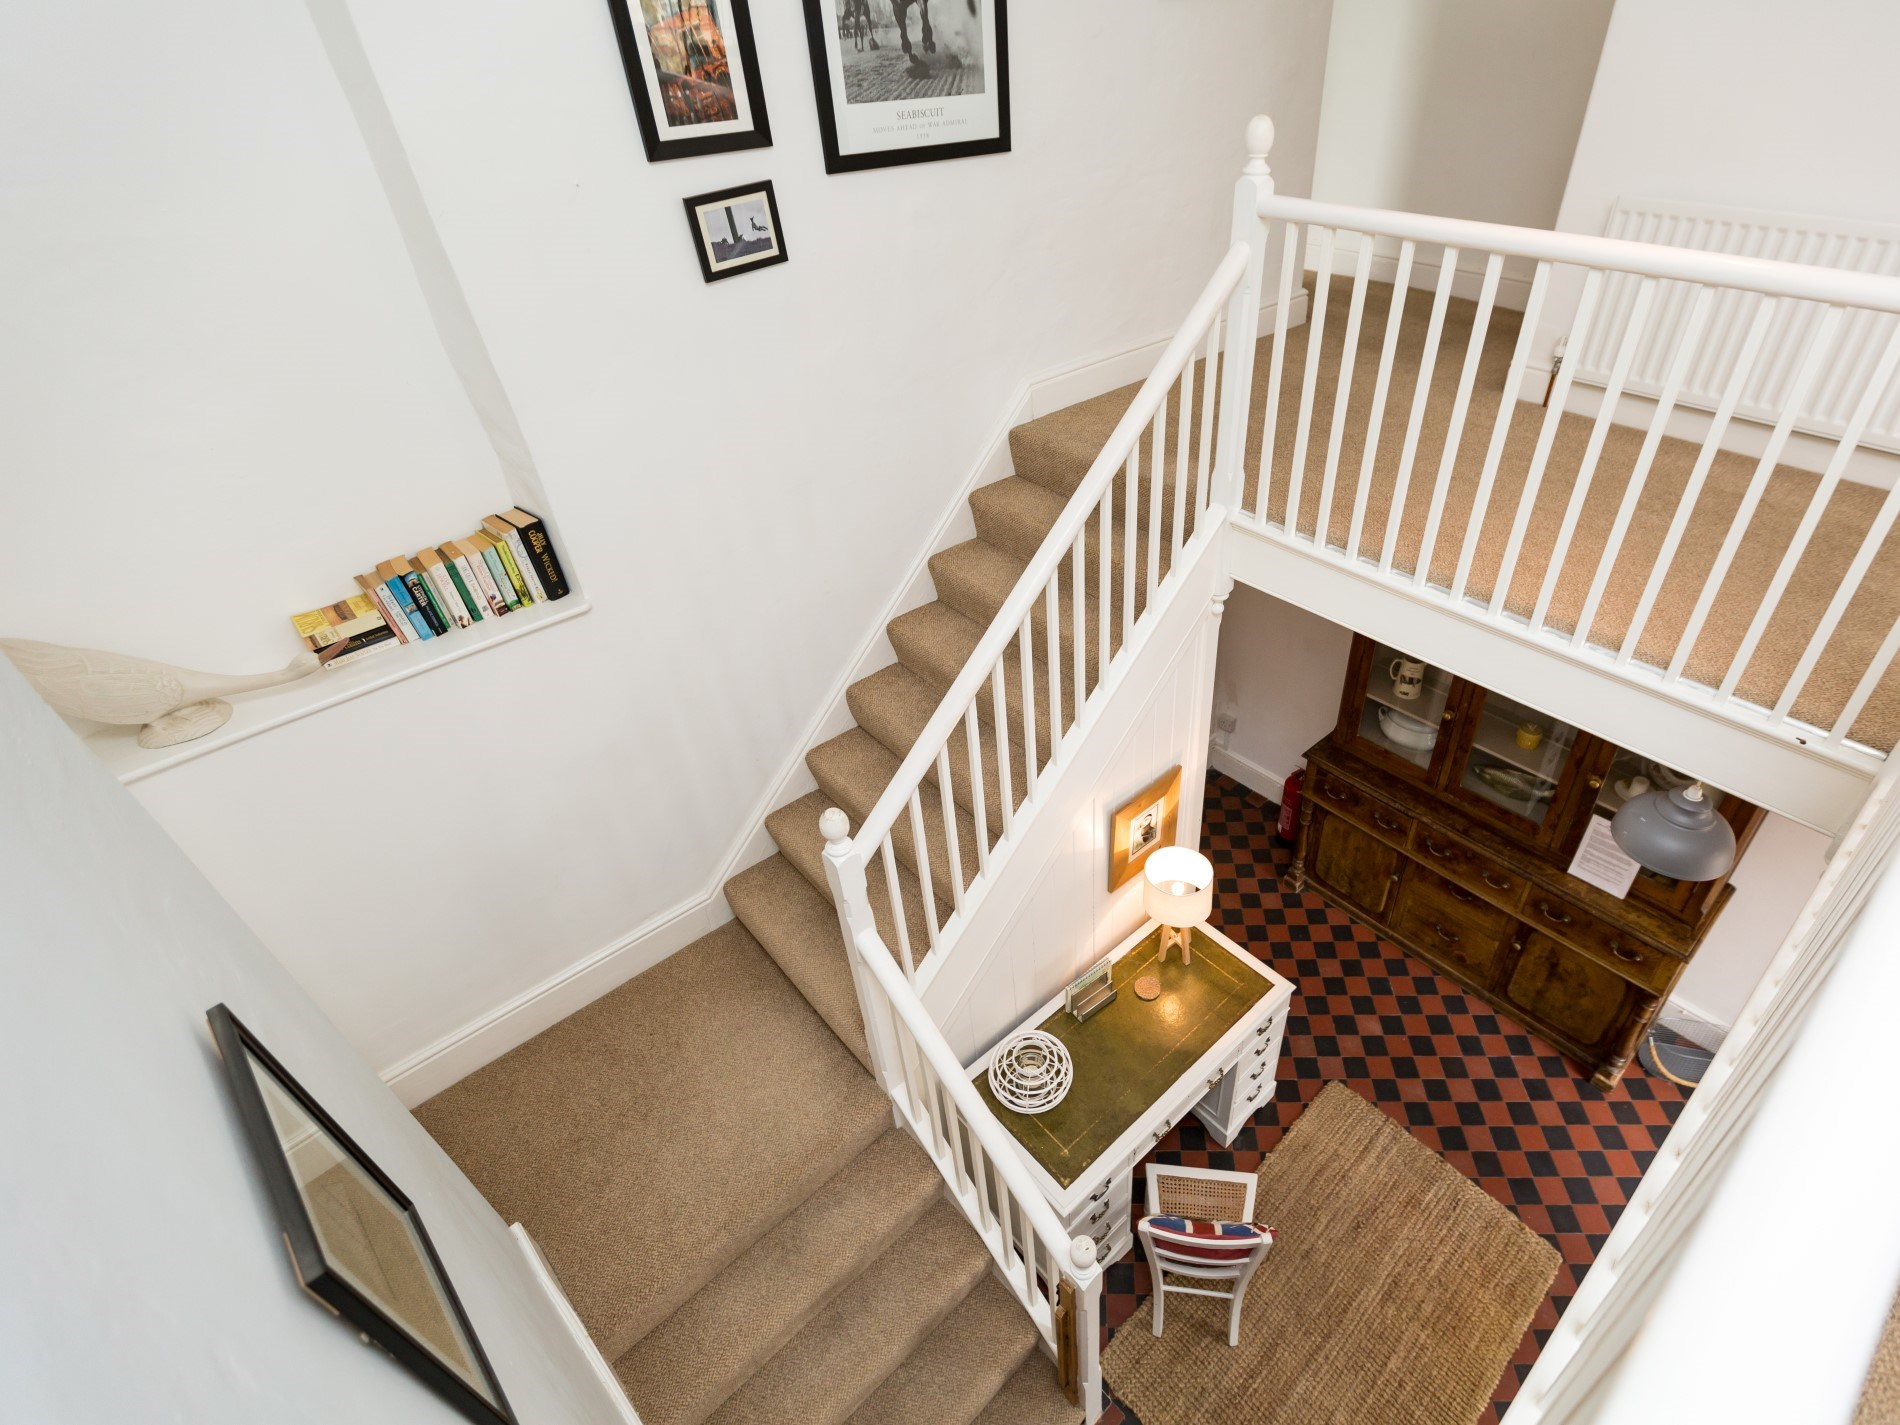 The bright and airy staircase leads you to the first floor